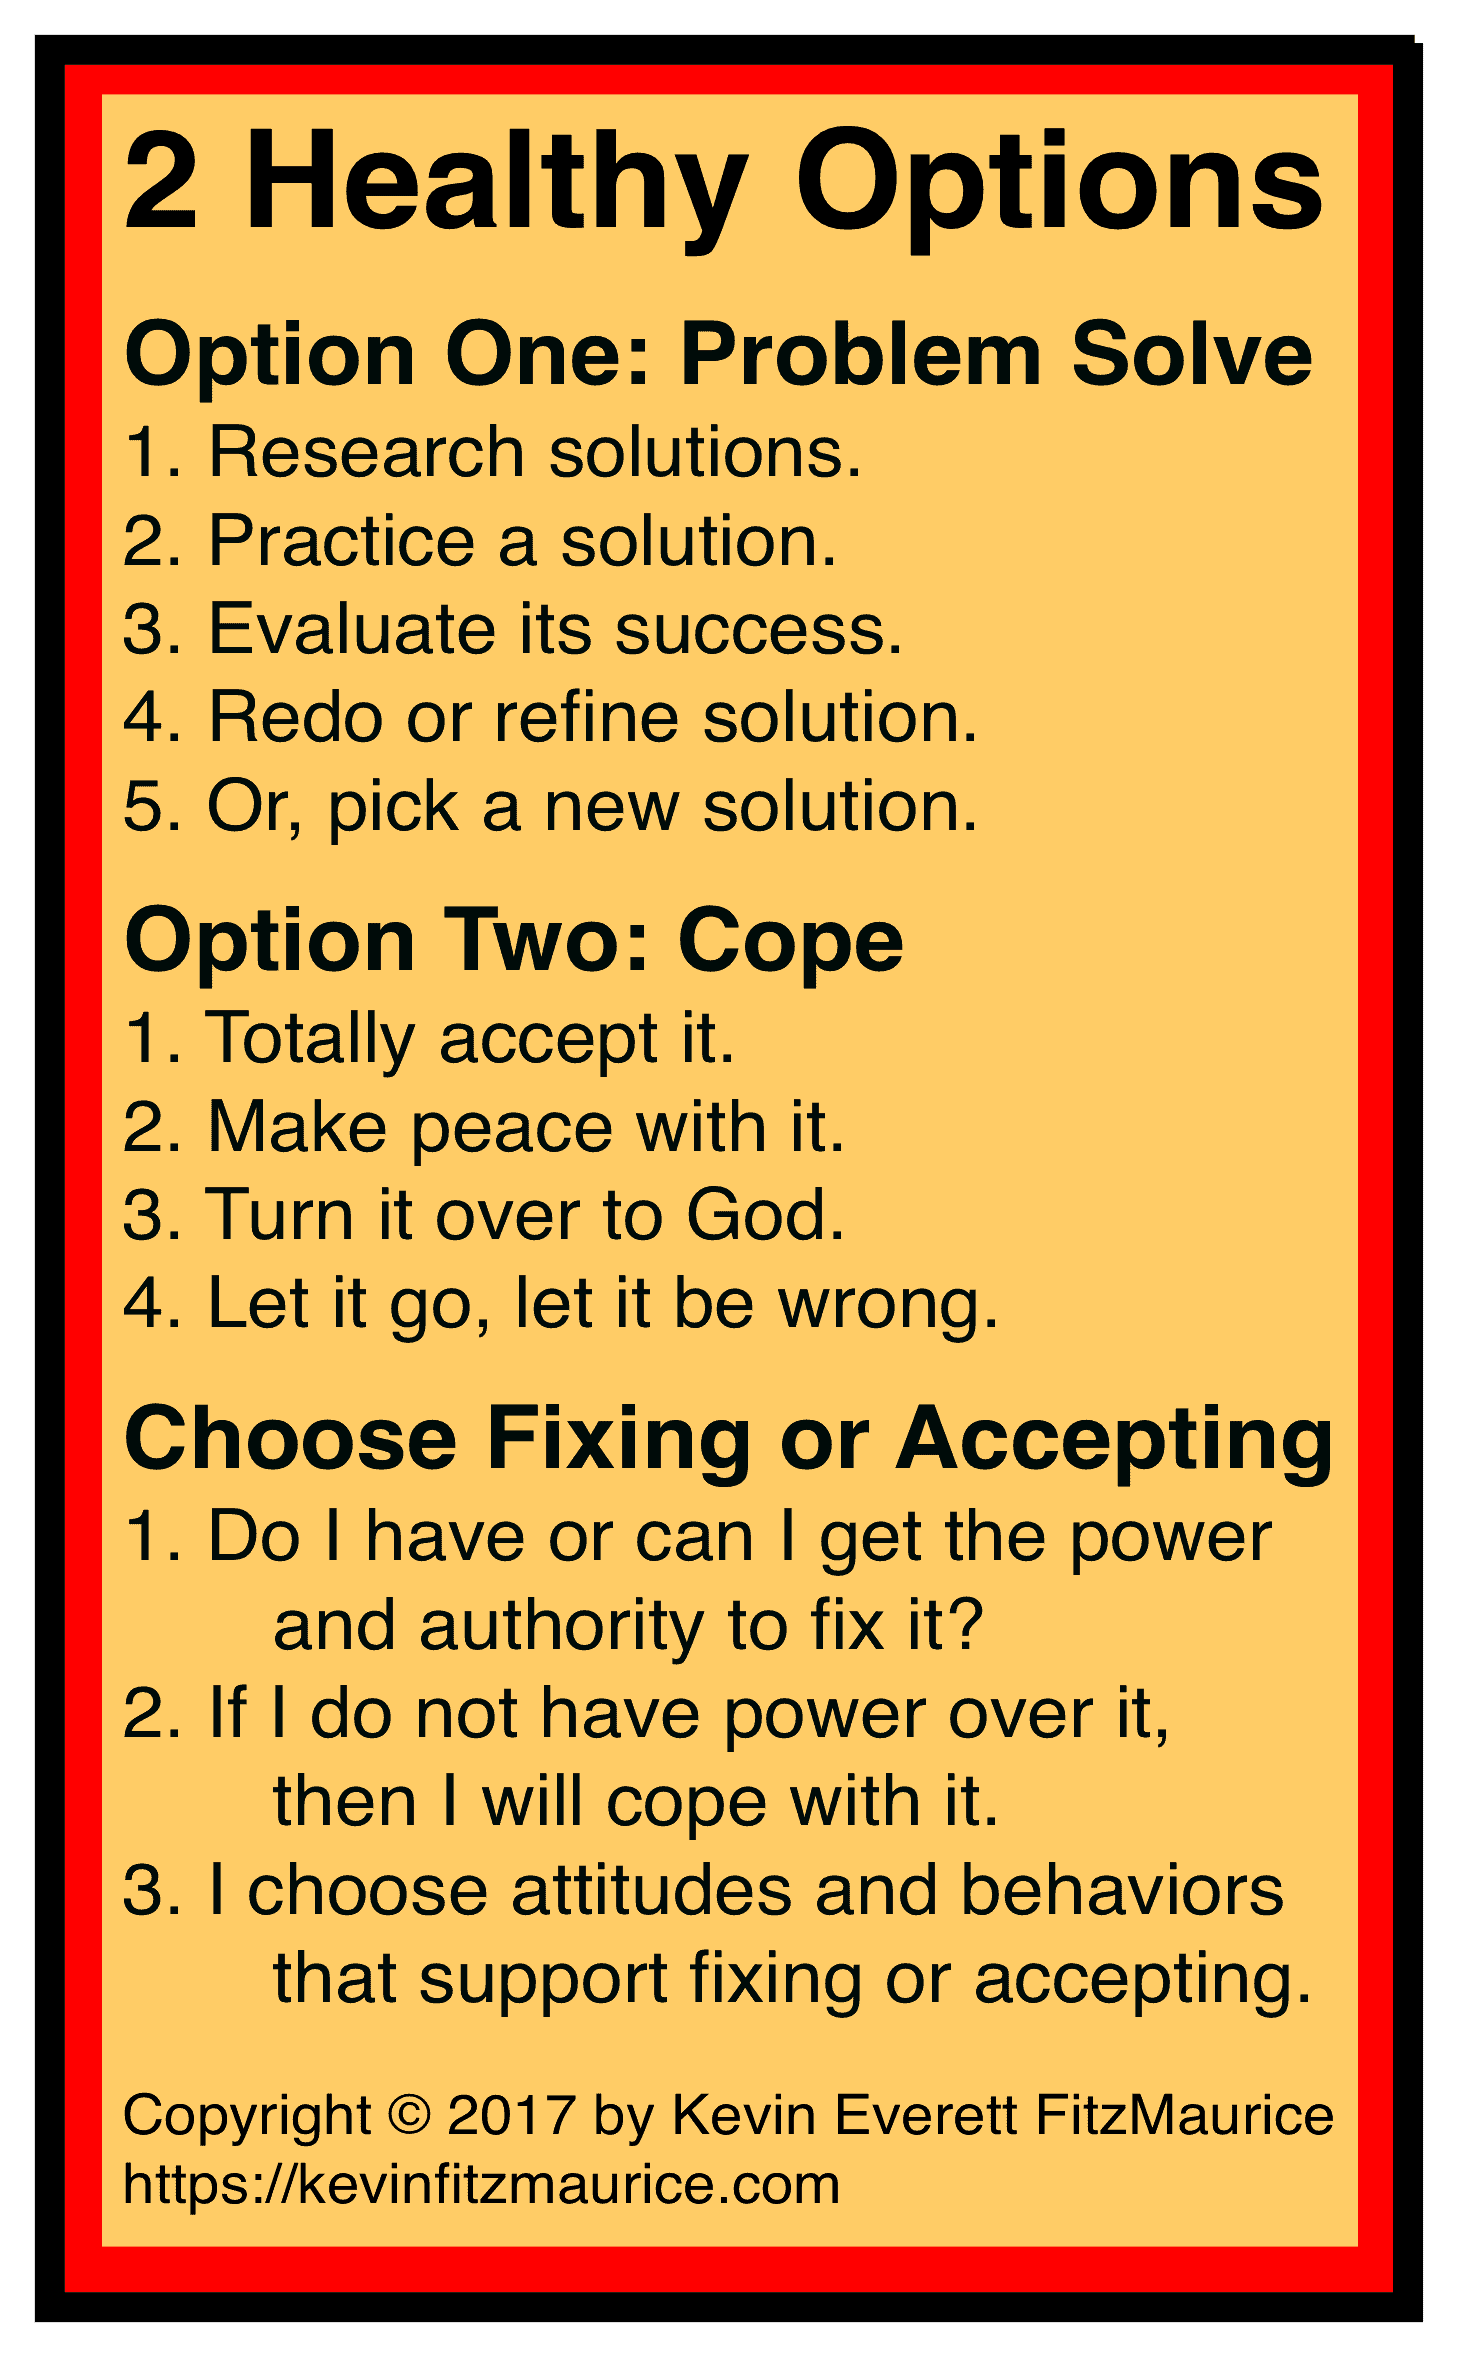 2 Healthy Options for Coping